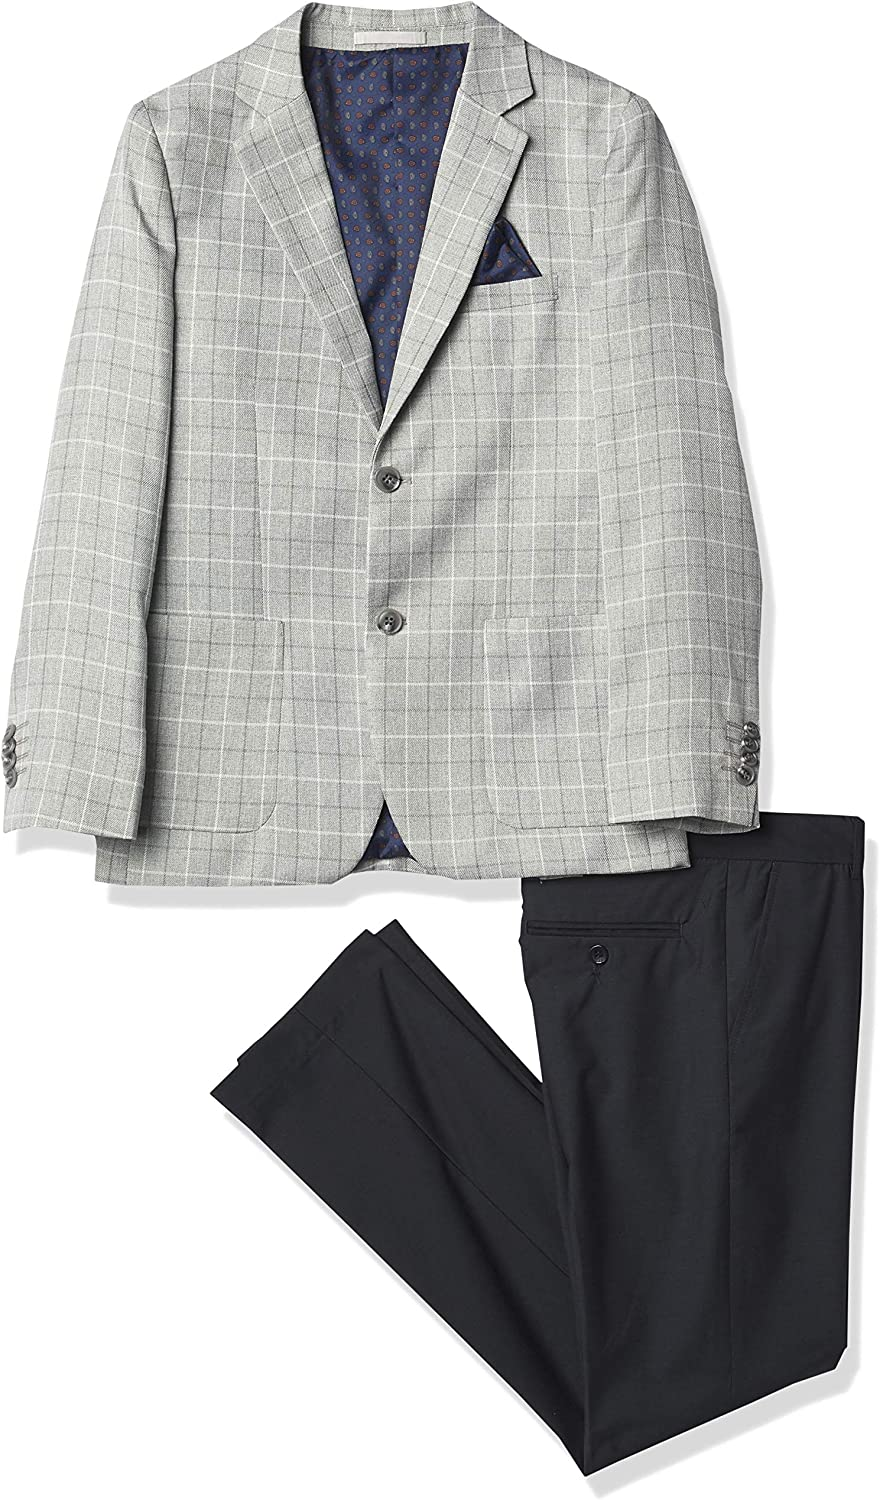 Isaac Mizrahi Boys' Slim Fit 2-Piece Suit Patch Contrast Challenge the lowest price of Japan 5 ☆ very popular Gingham